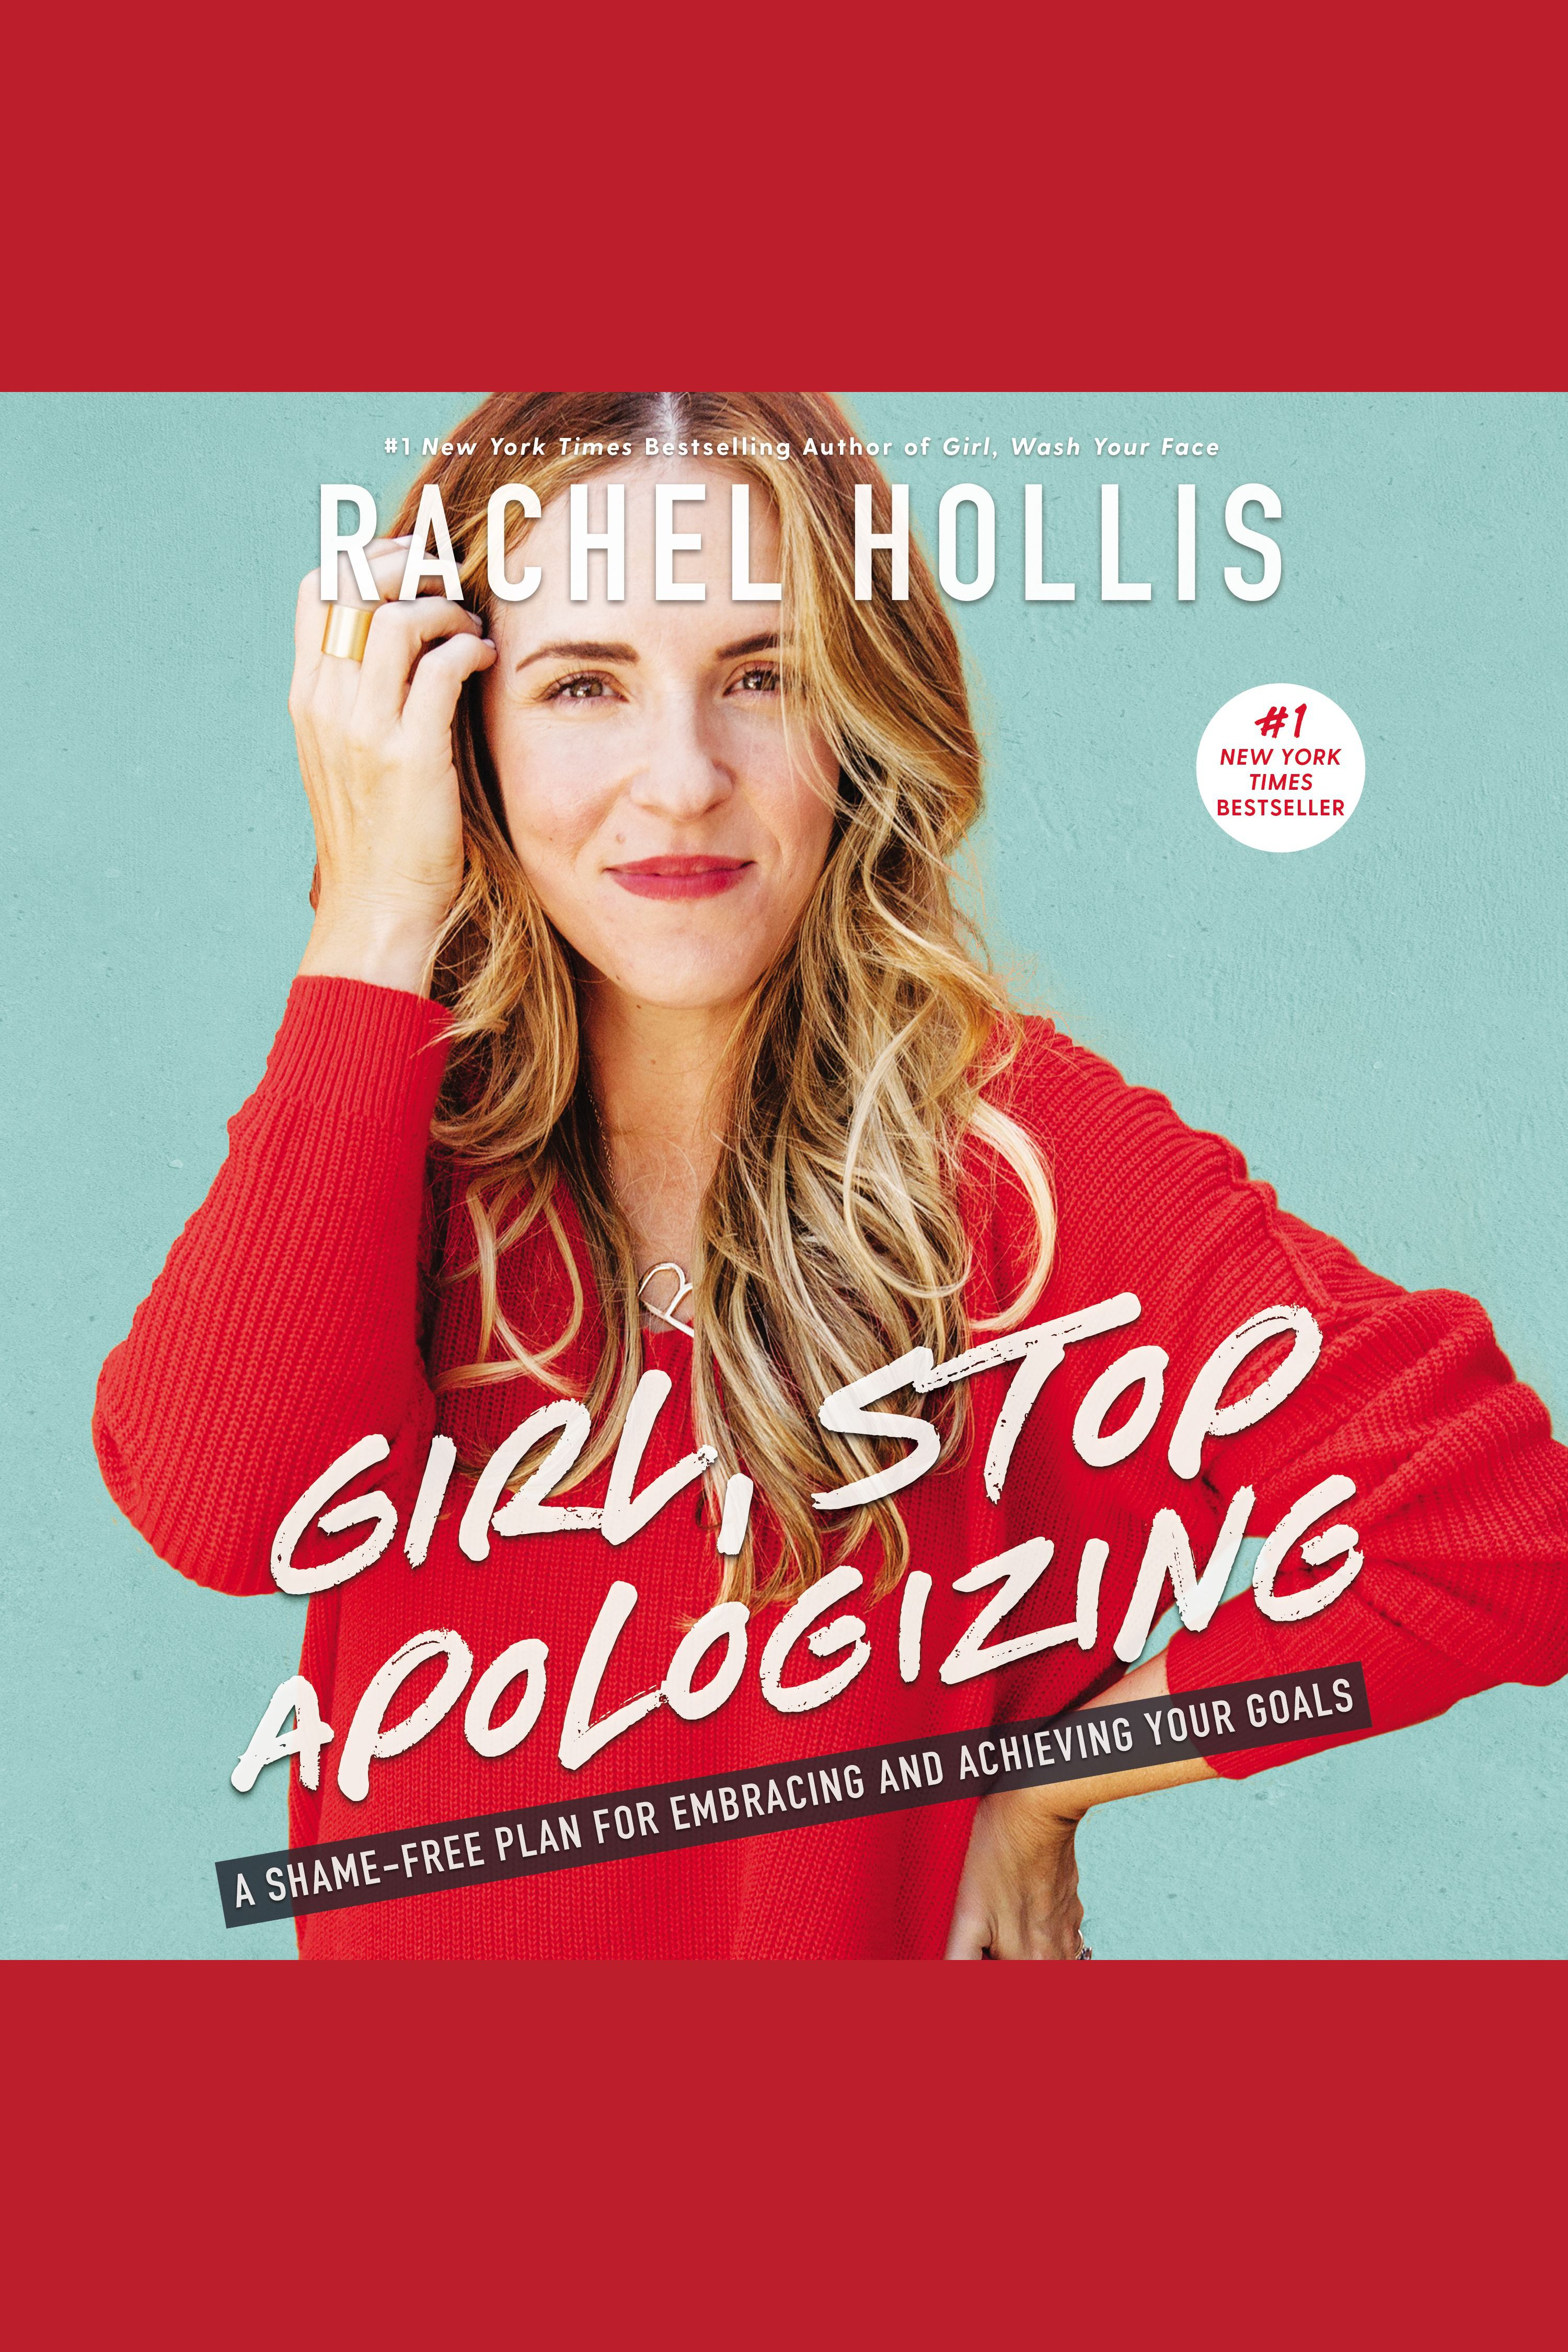 Girl, Stop Apologizing:A Shame-Free Plan for Embracing and Achieving Your Goals